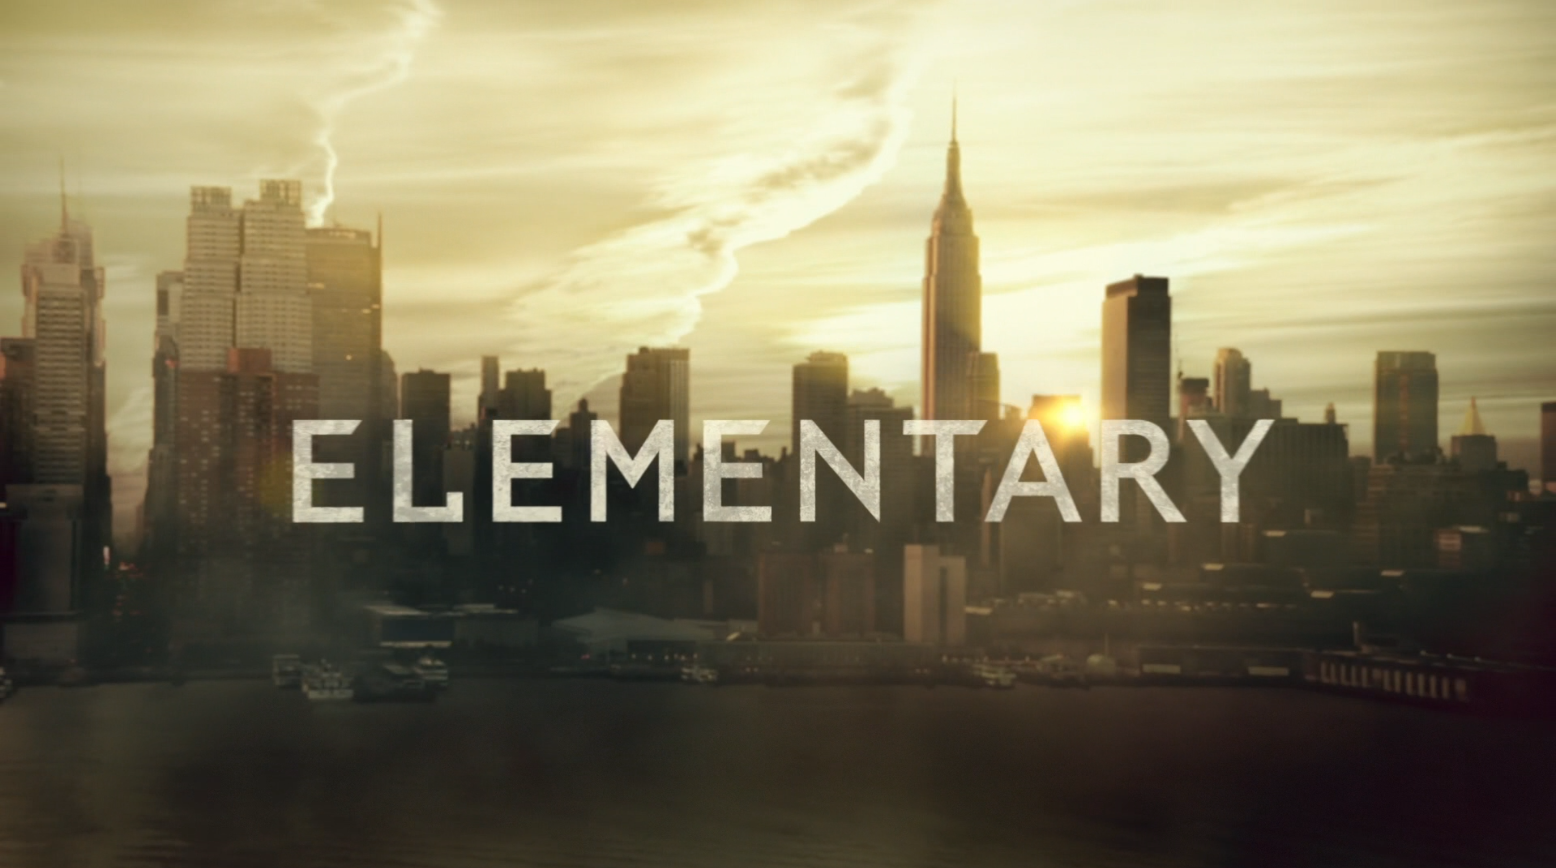 Elementary TV-show Logo - Starring Jonny Lee Miller as Sherlock Holmes and Lucy Liu as Joan Watson